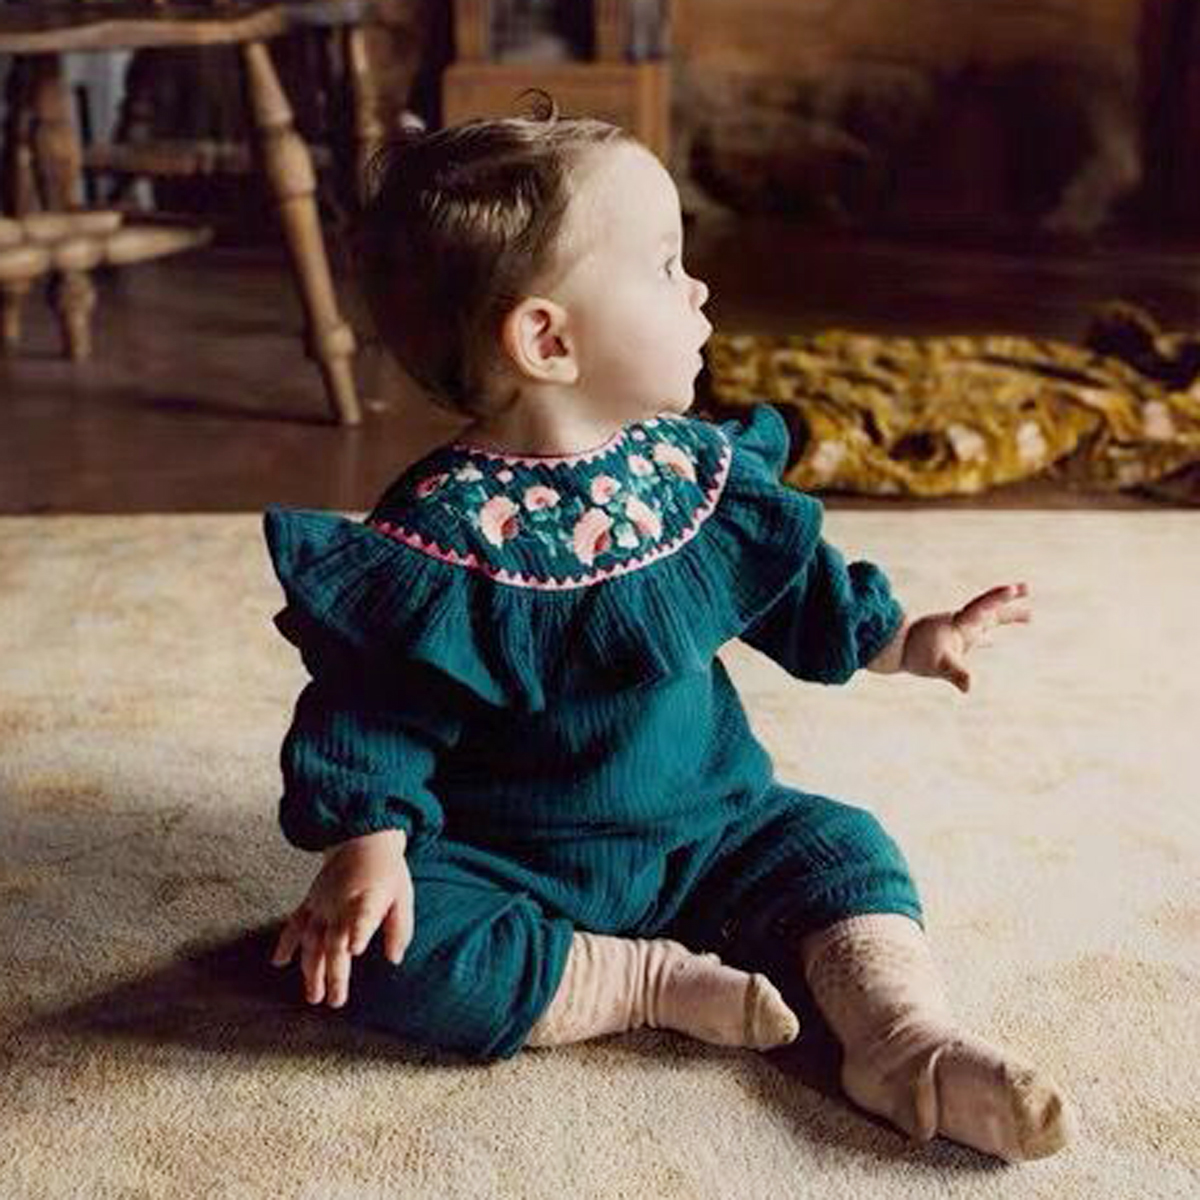 Baby Romper Vintage Newborn Kid Baby Boy Girl Solid Clothes Flower Long Sleeve Embroidery Ruffle Elastic Cuffs Jumpsuit Outfit